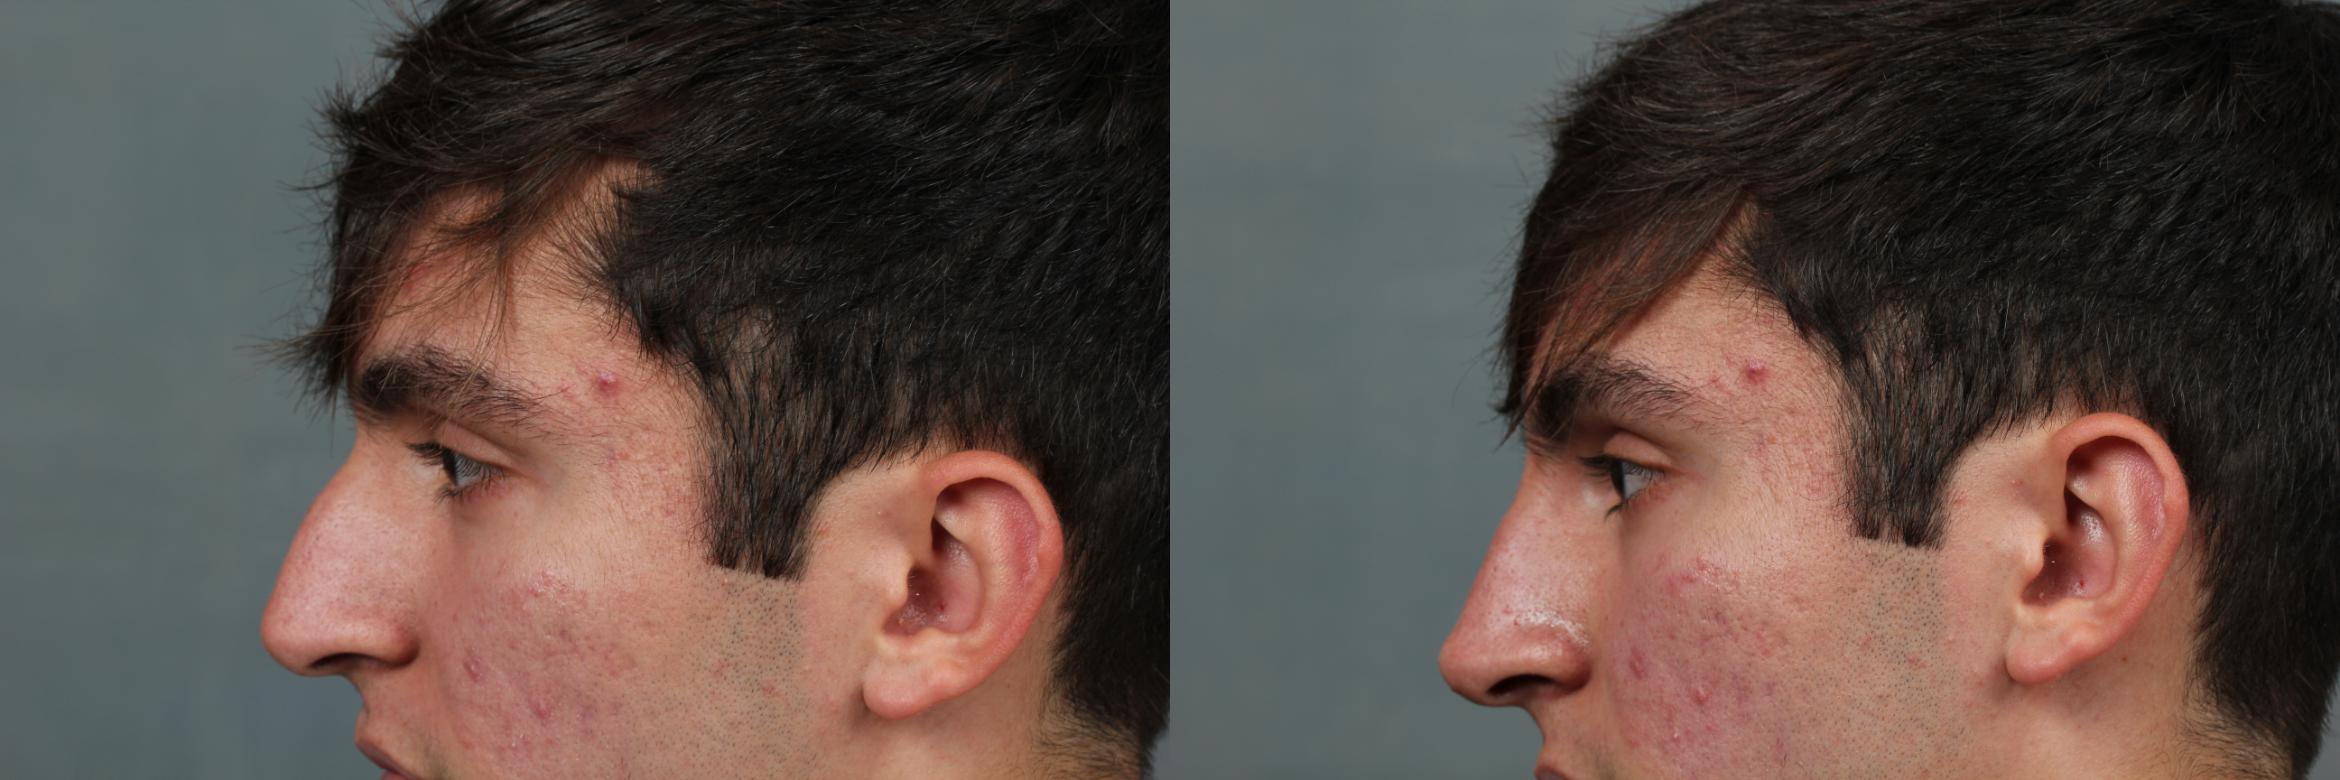 Liquid Rhinoplasty Case 650 Before & After Left Side | Louisville, KY | CaloAesthetics® Plastic Surgery Center